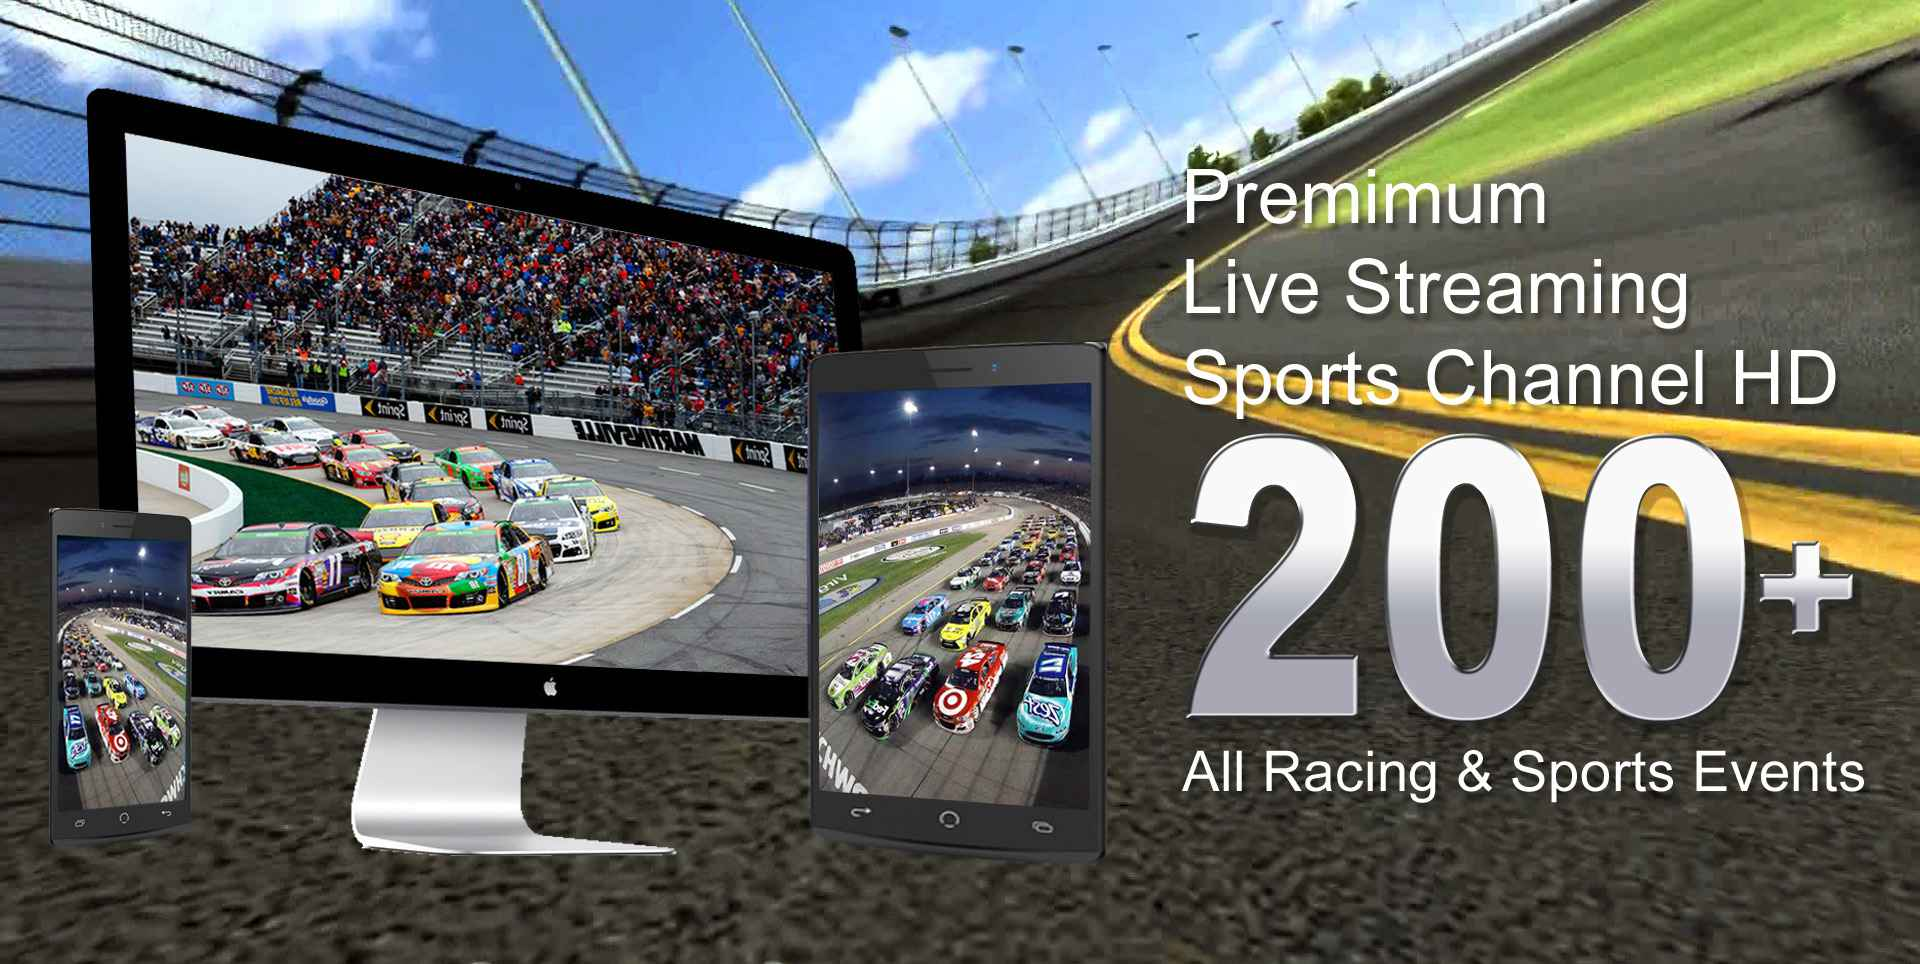 bristol:-nascar-complete-schedule,times-,tv-info-for-sprint-cup,xfinity-and-truck-races